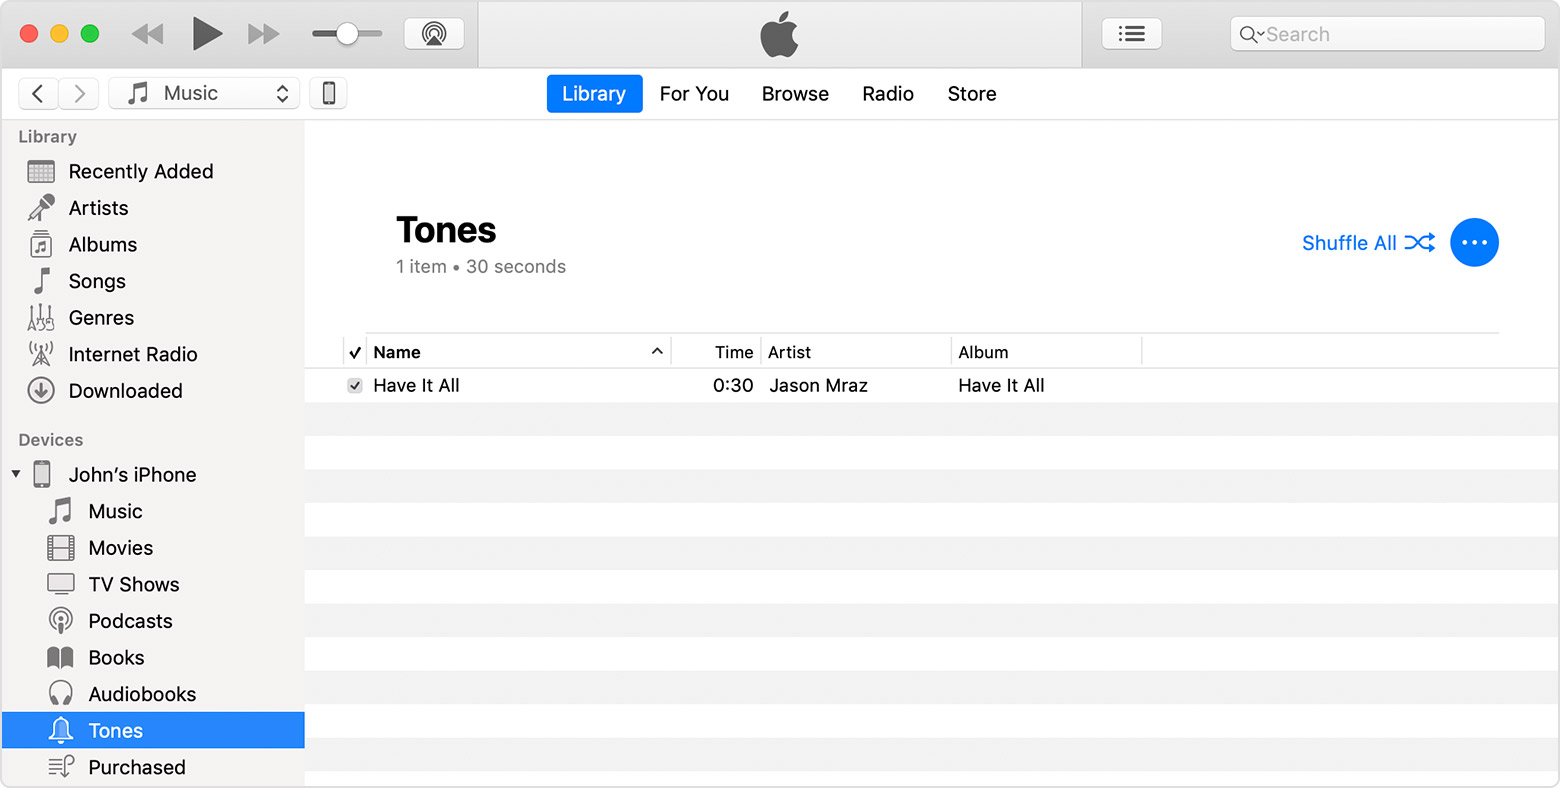 How do you make a song your ringtone on iphone with itunes